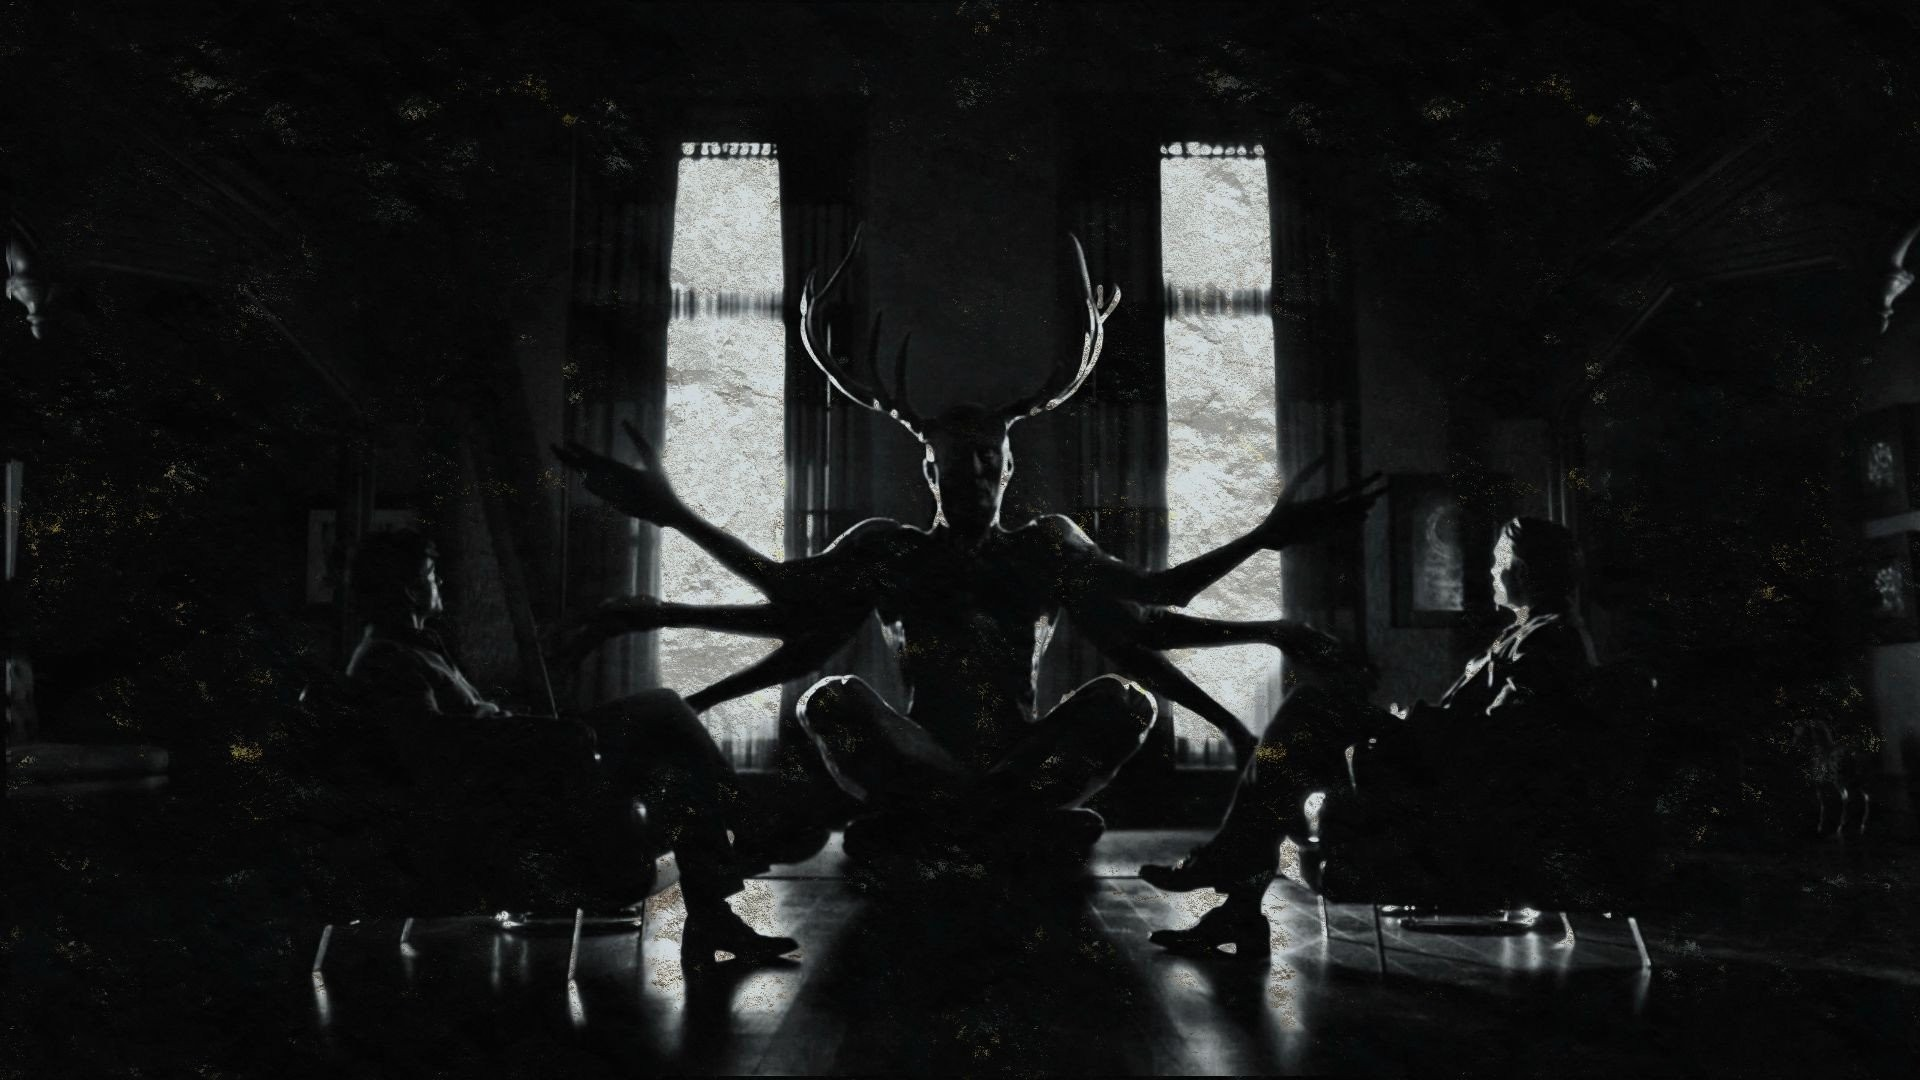 Res: 1920x1080, Hannibal Wallpapers 13 - 1920 X 1080